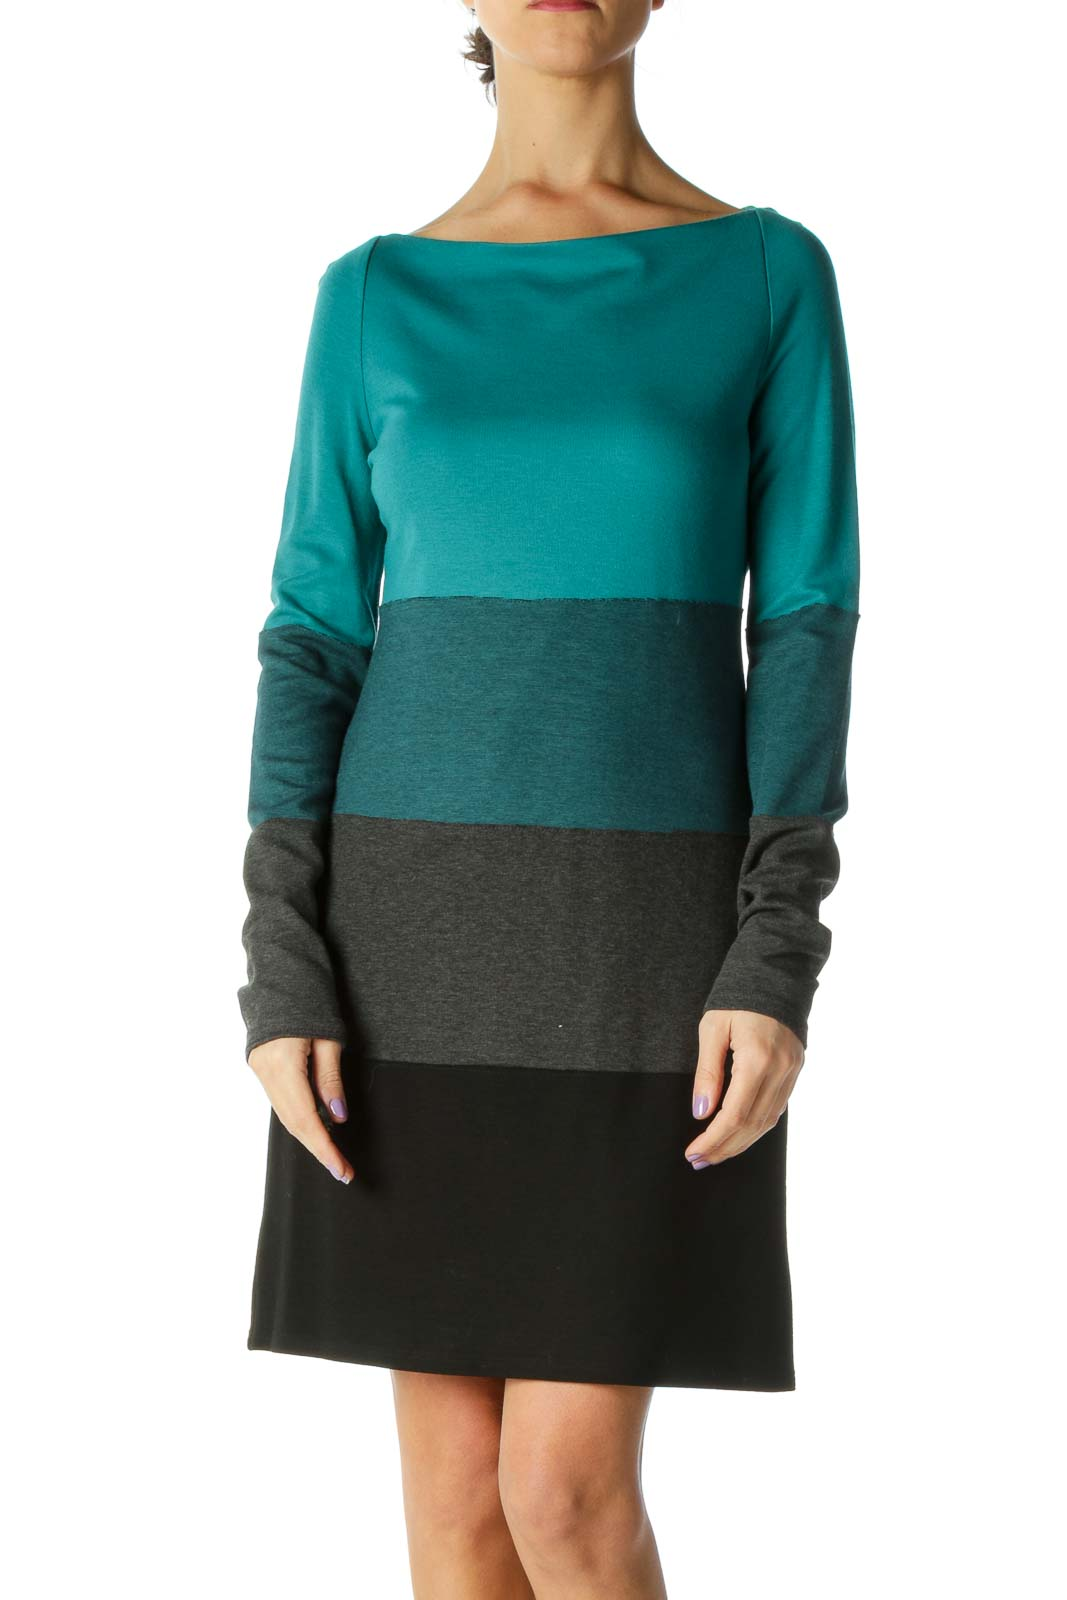 Green Color Block Shift Dress